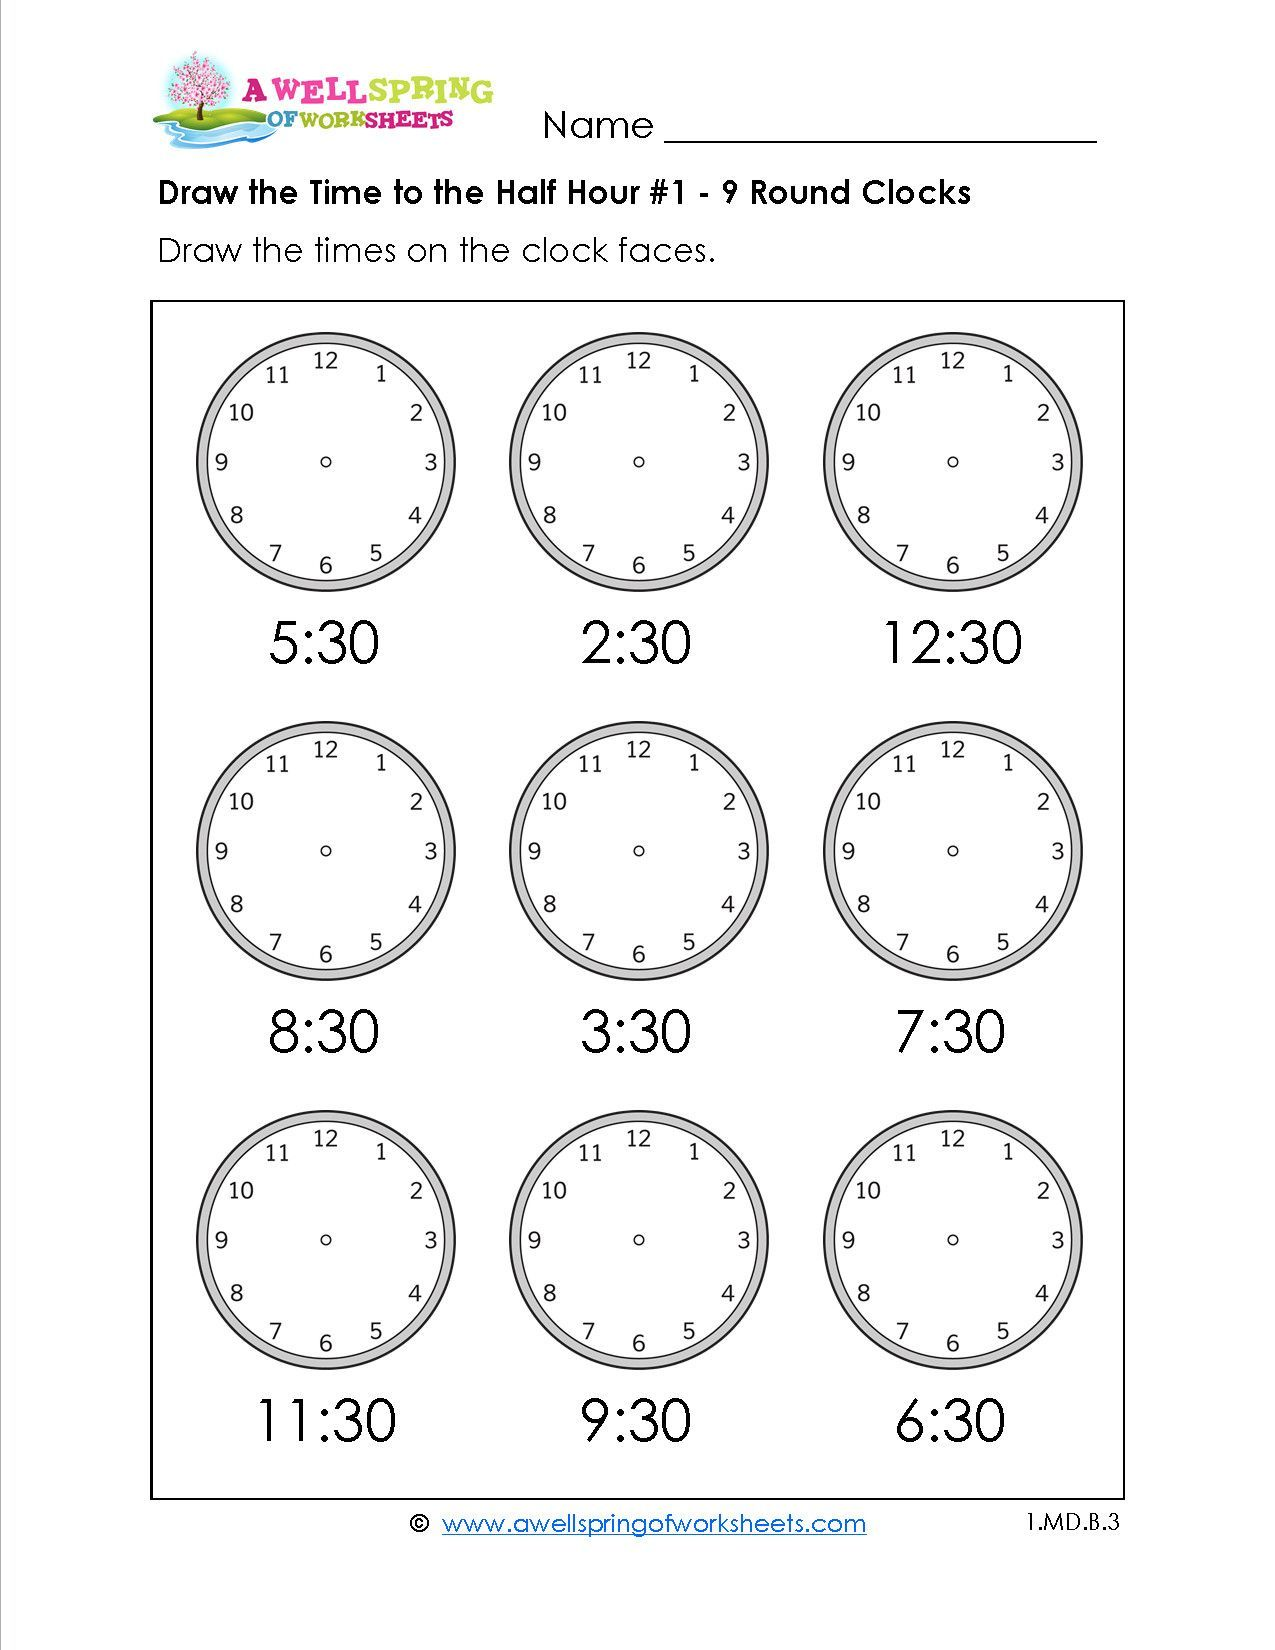 Math 5 Free Math Worksheets Second Grade 2 Telling Time Telling Time 1 Minute Draw Clock D13e6 In 2020 Time Worksheets First Grade Math Worksheets Free Math Worksheets [ 1650 x 1275 Pixel ]